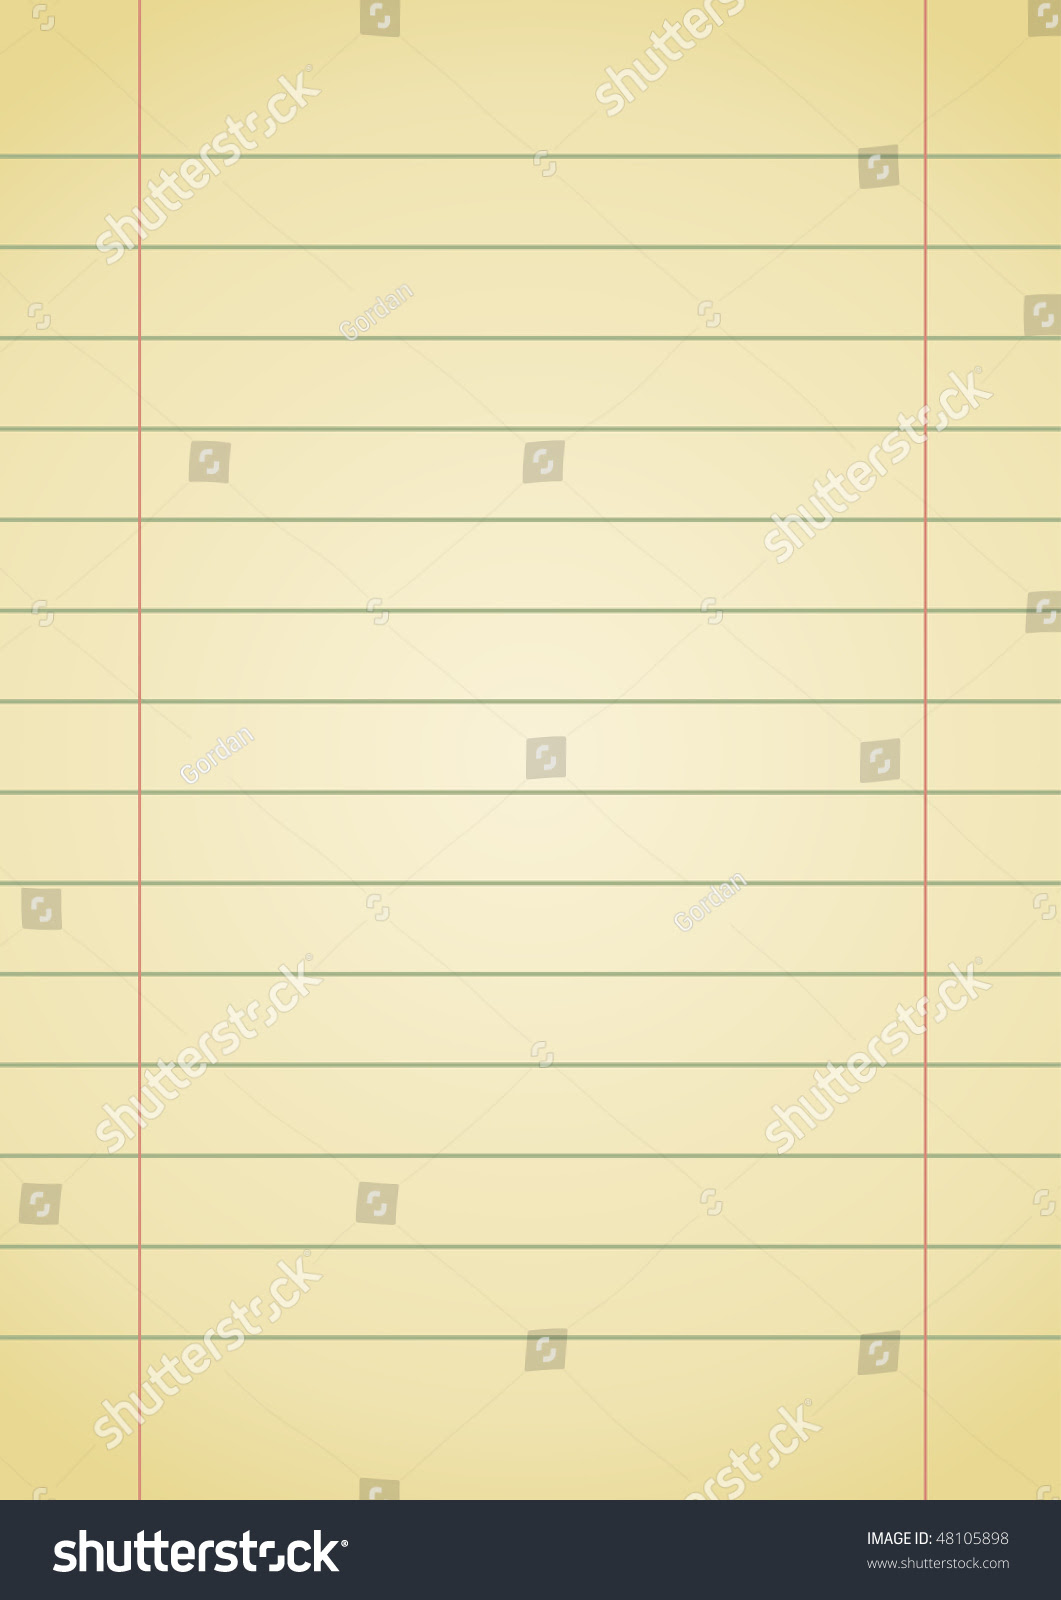 Editable Vector Background - Old Yellow Notebook Paper With Space ...